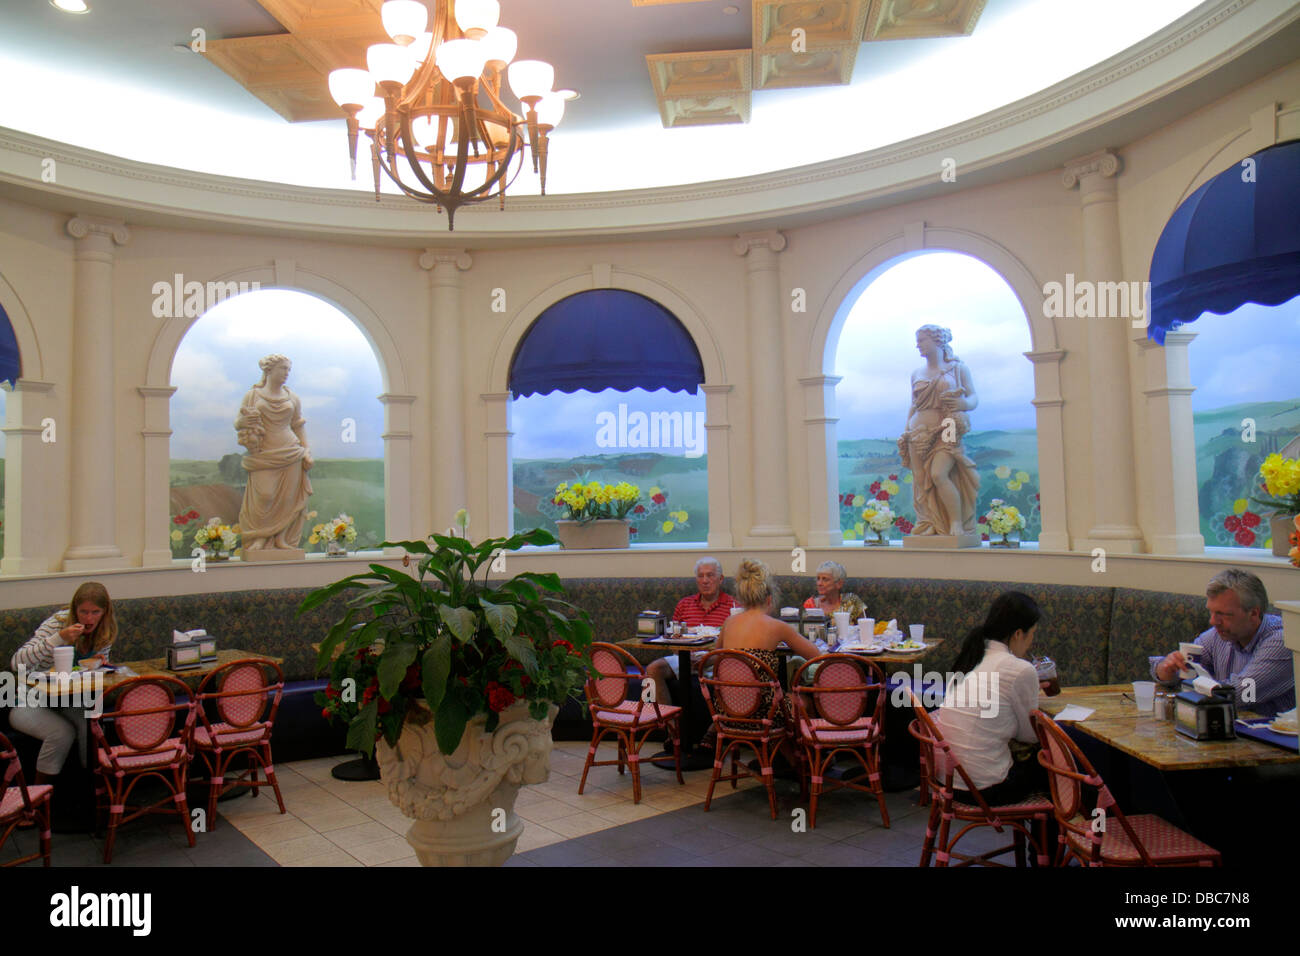 Fort Lauderdale Ft. Florida The Galleria at Fort Lauderdale mall shopping food court restaurant tables eating area - Stock Image